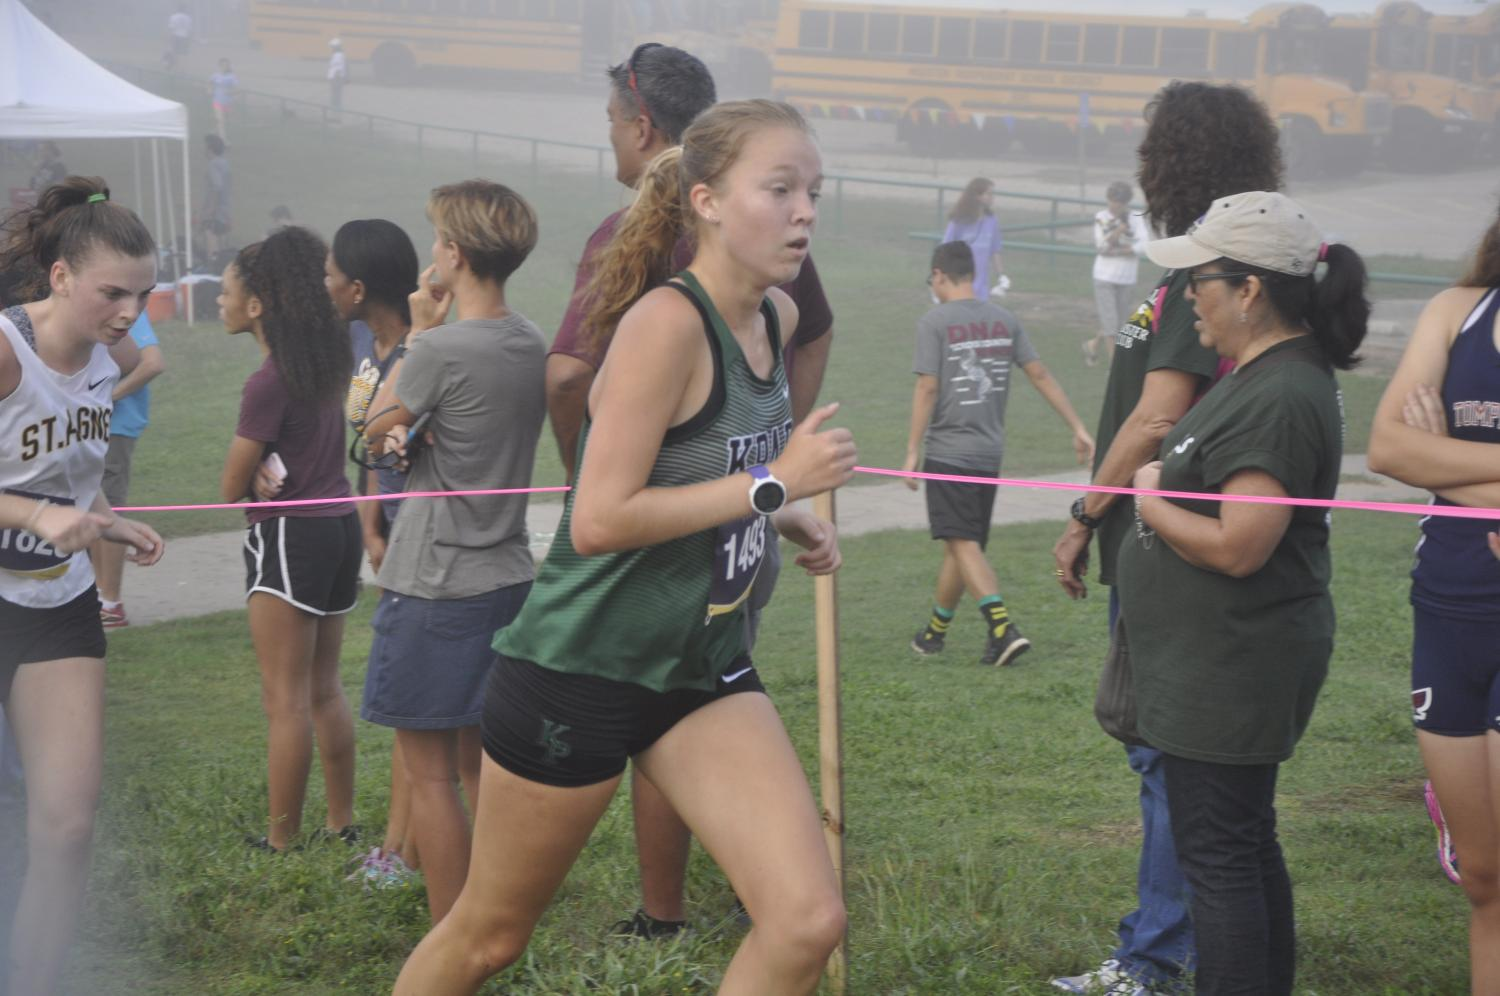 Senior Kimber Watson, a varsity XC runner, competes at the Brenham Hillacious meet.